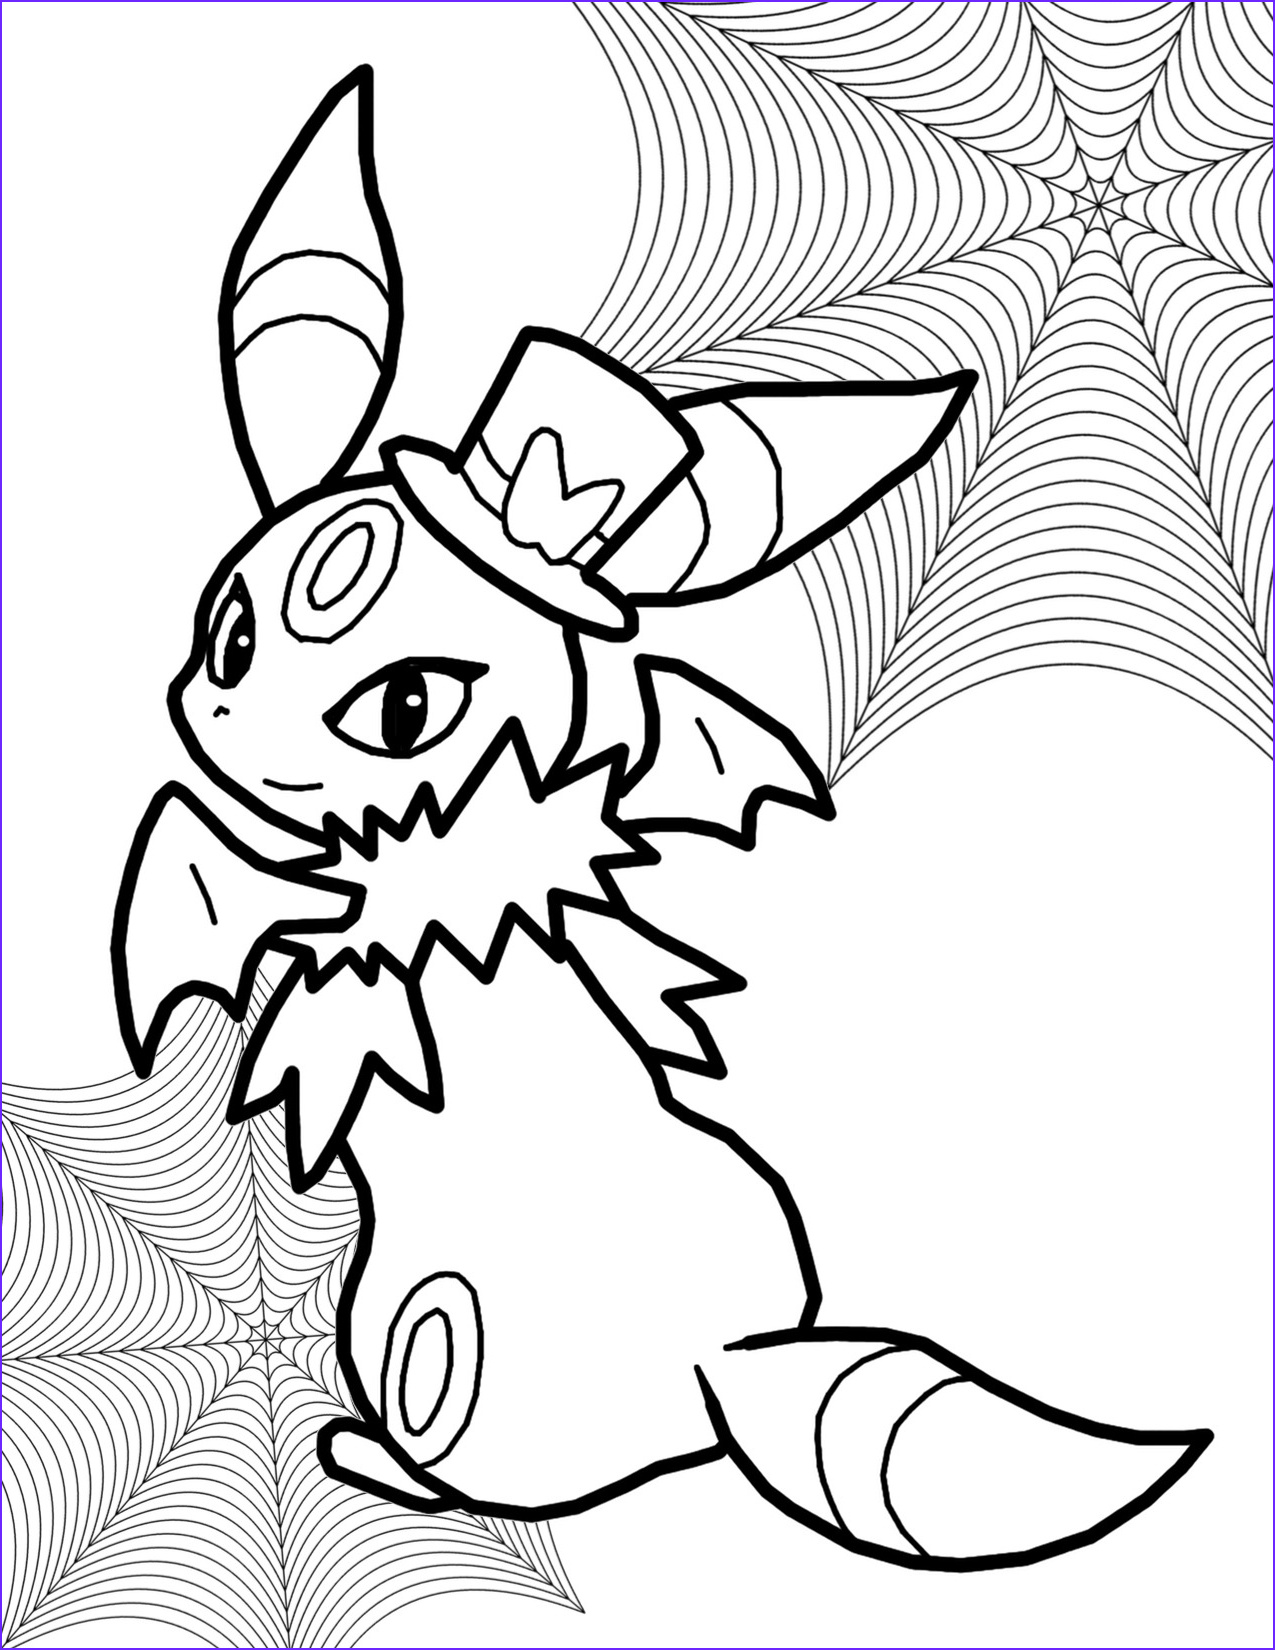 here is the last of the halloween coloring pages i